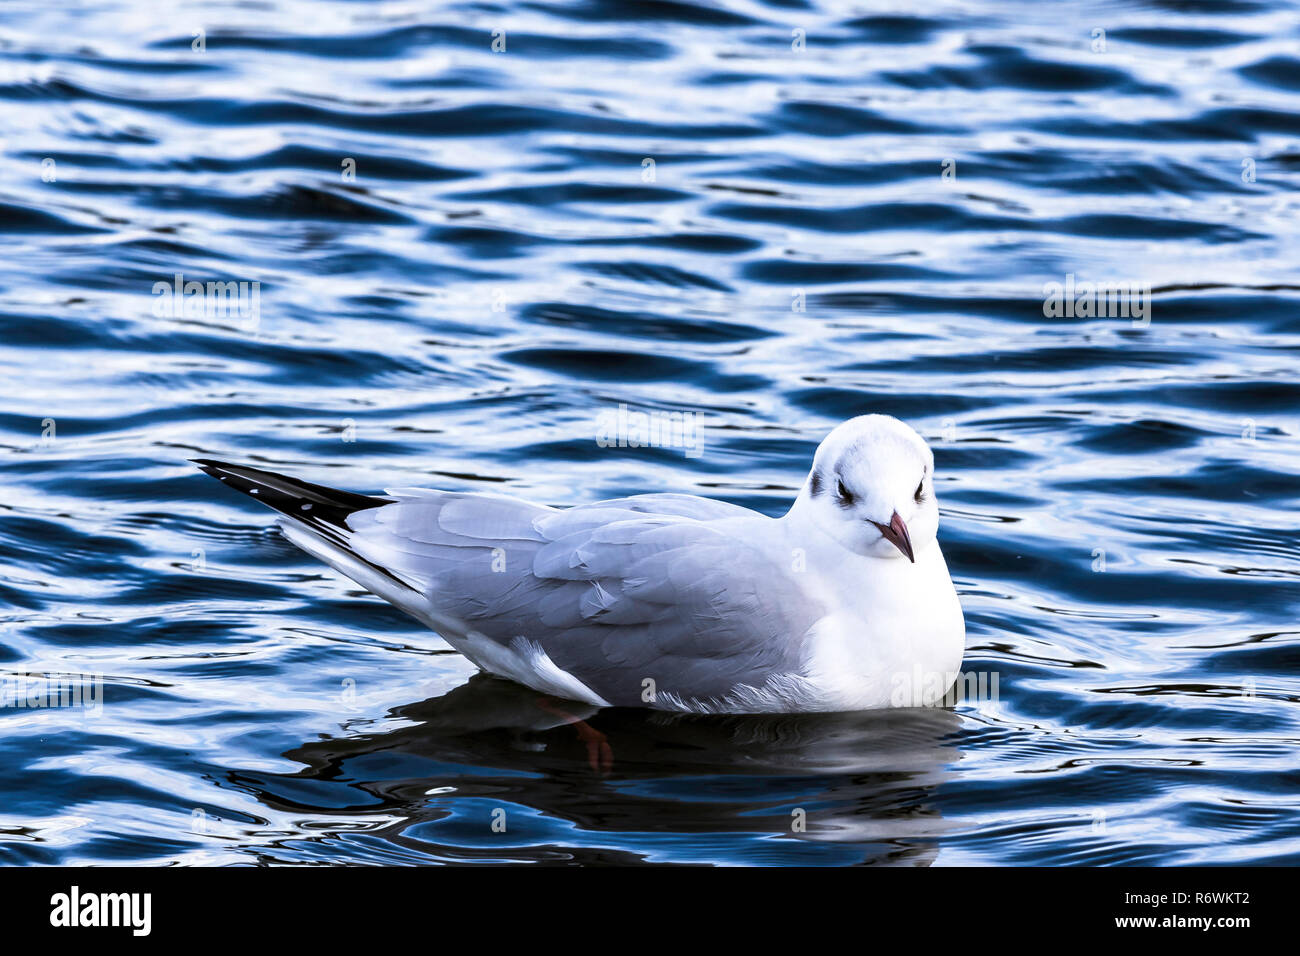 Swimming common gull in Bedfont Lakes Country Park, London - Stock Image